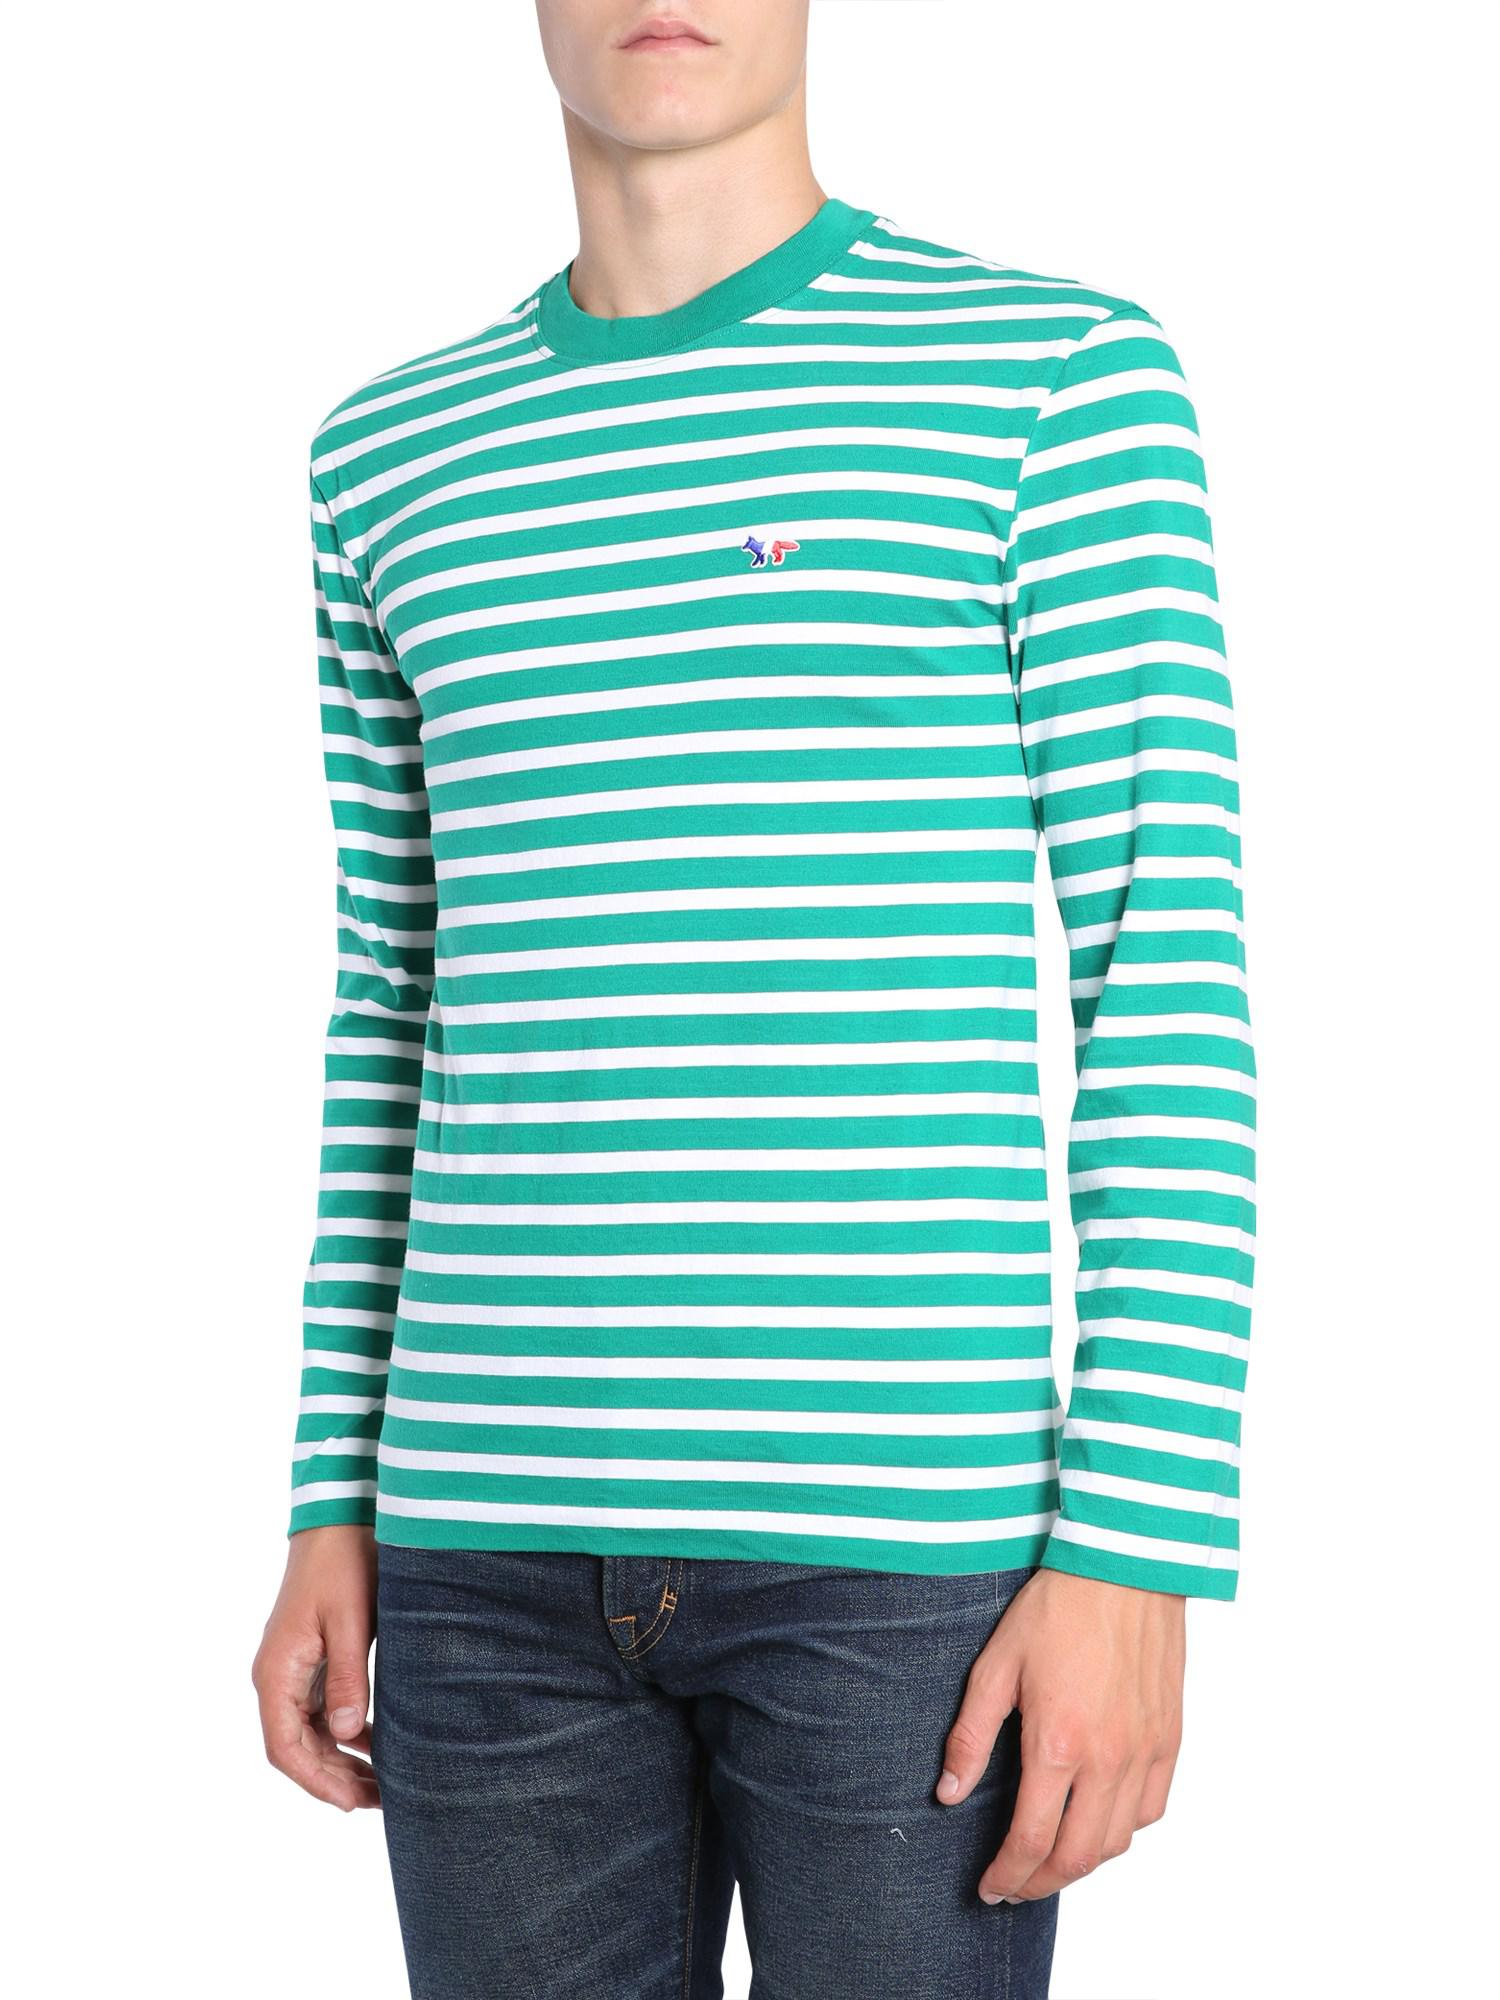 14348a7611 Maison Kitsuné Striped Long Sleeve Cotton T-shirt With Fox Patch in ...